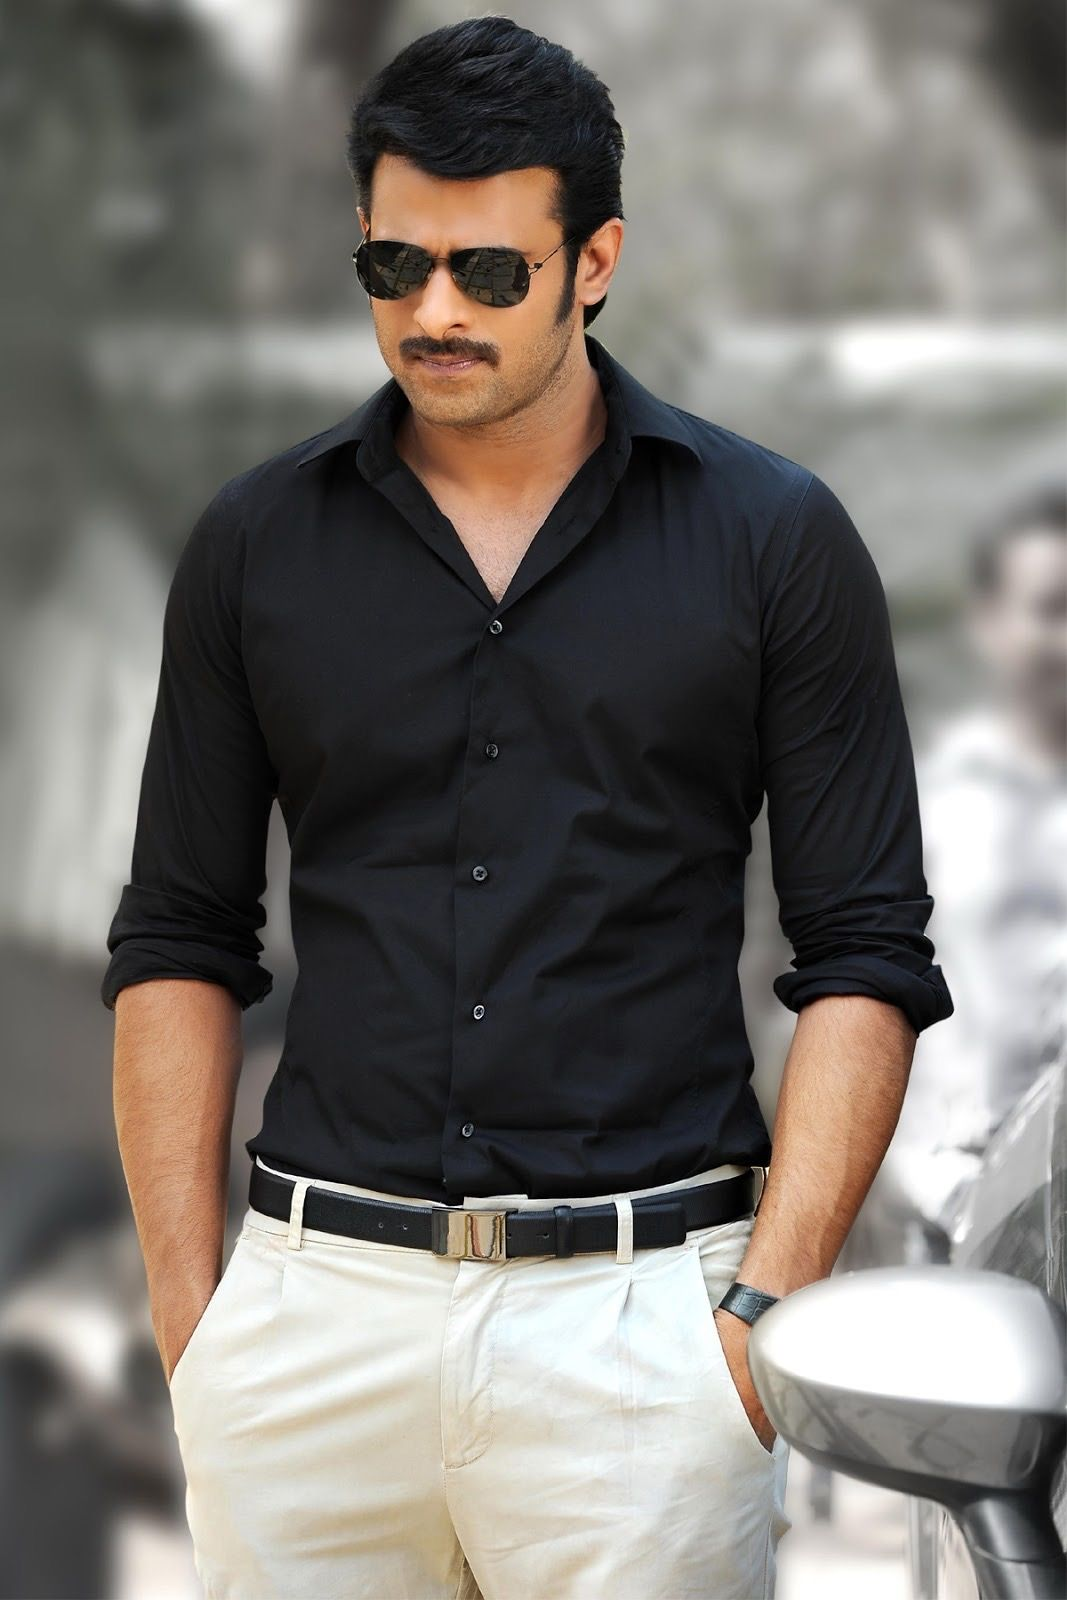 prabhas in black looking so hot!! | pranushka | pinterest